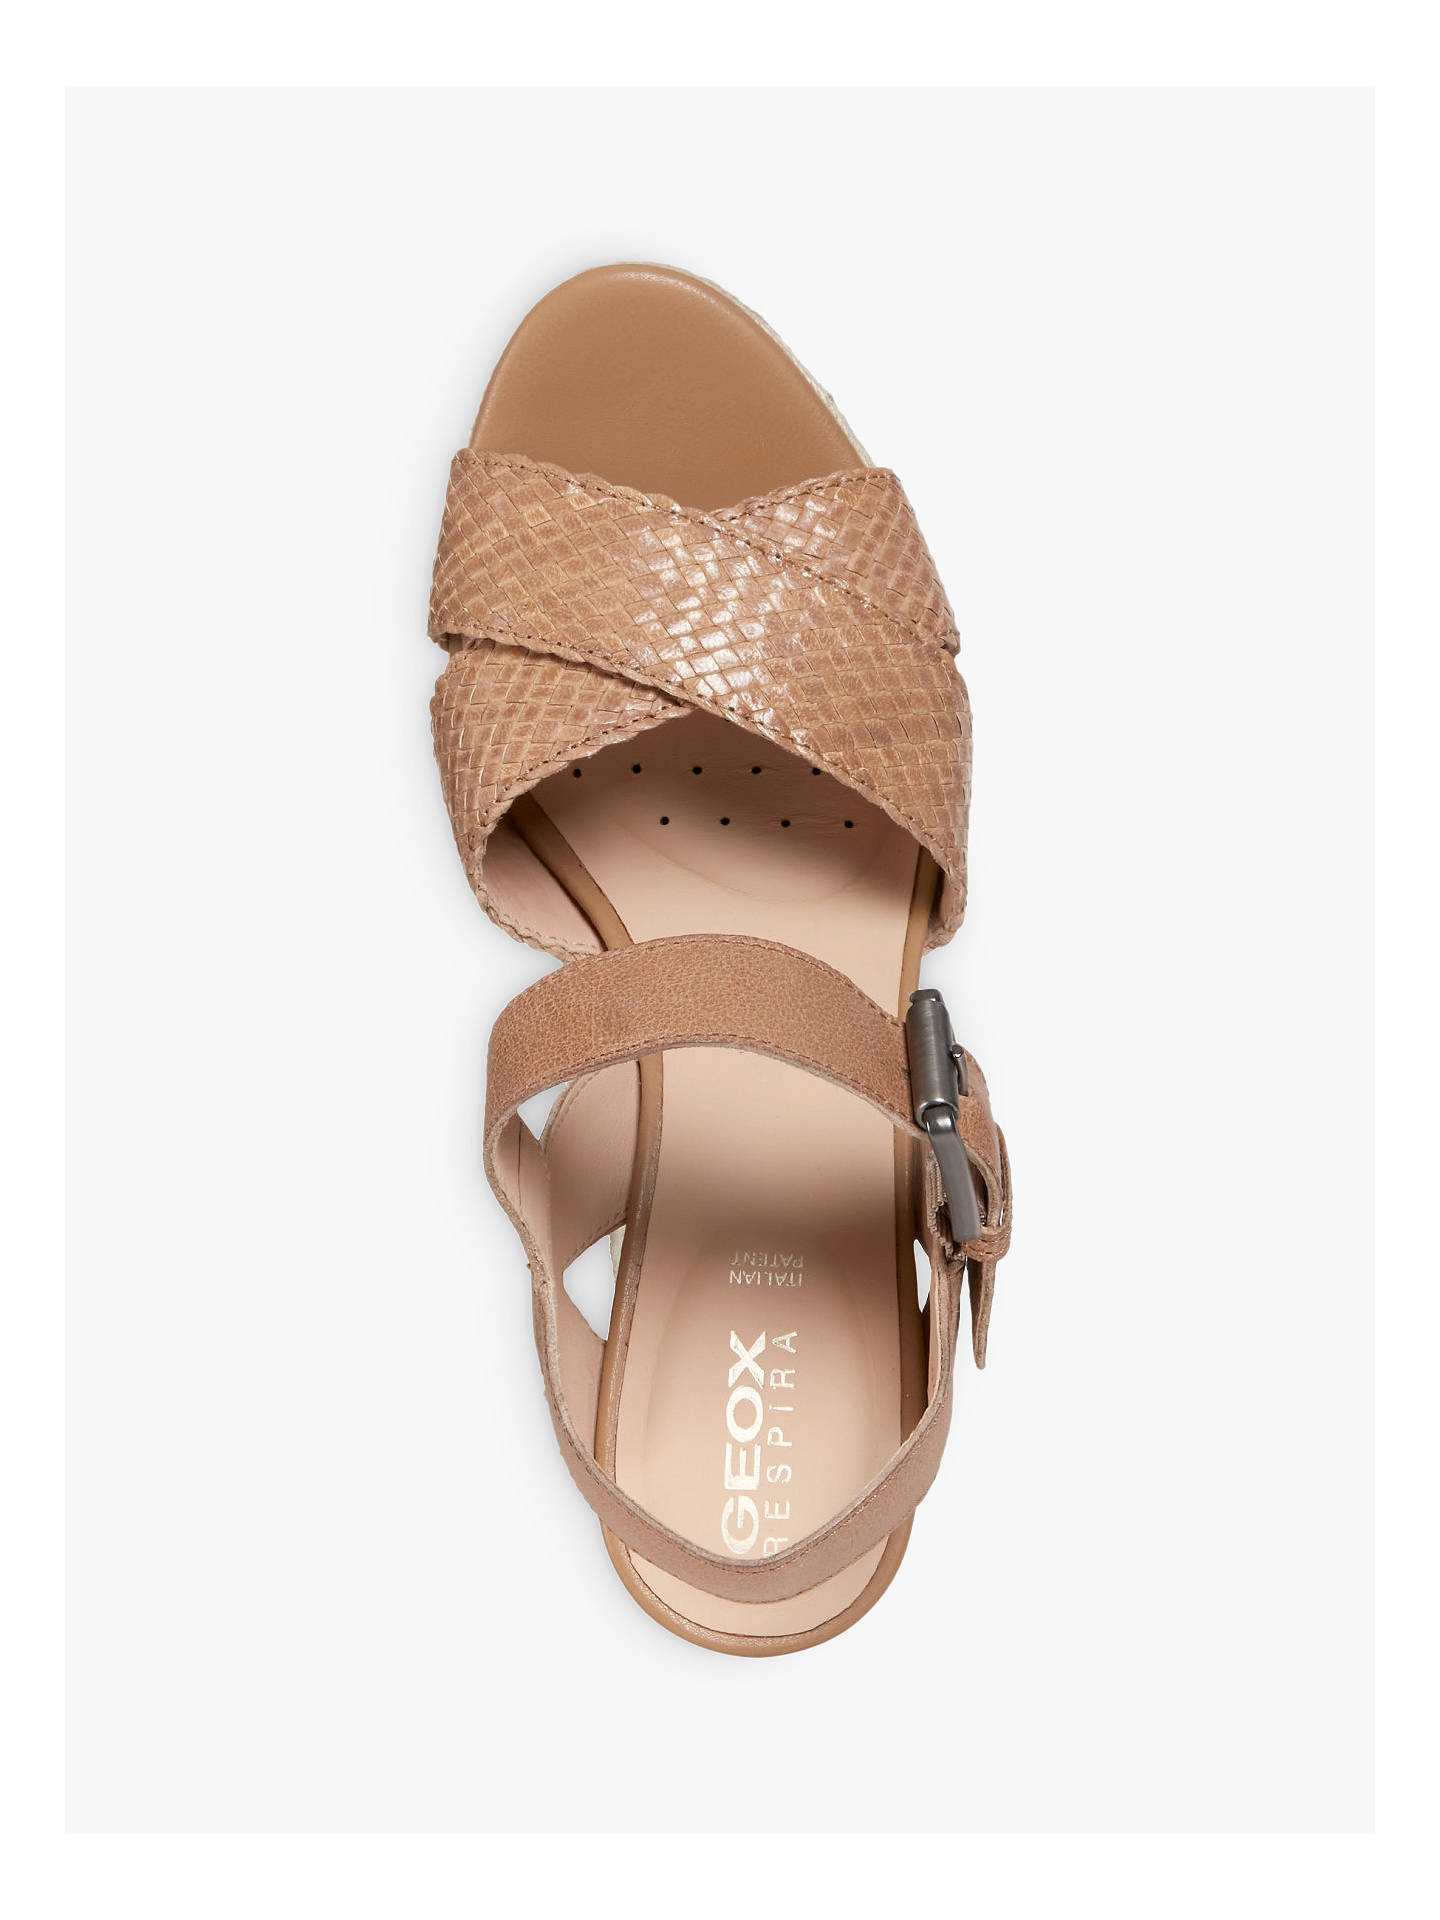 Buy Geox Women's Yulimar Wedge Heeled Sandals, Taupe Leather, 3 Online at johnlewis.com